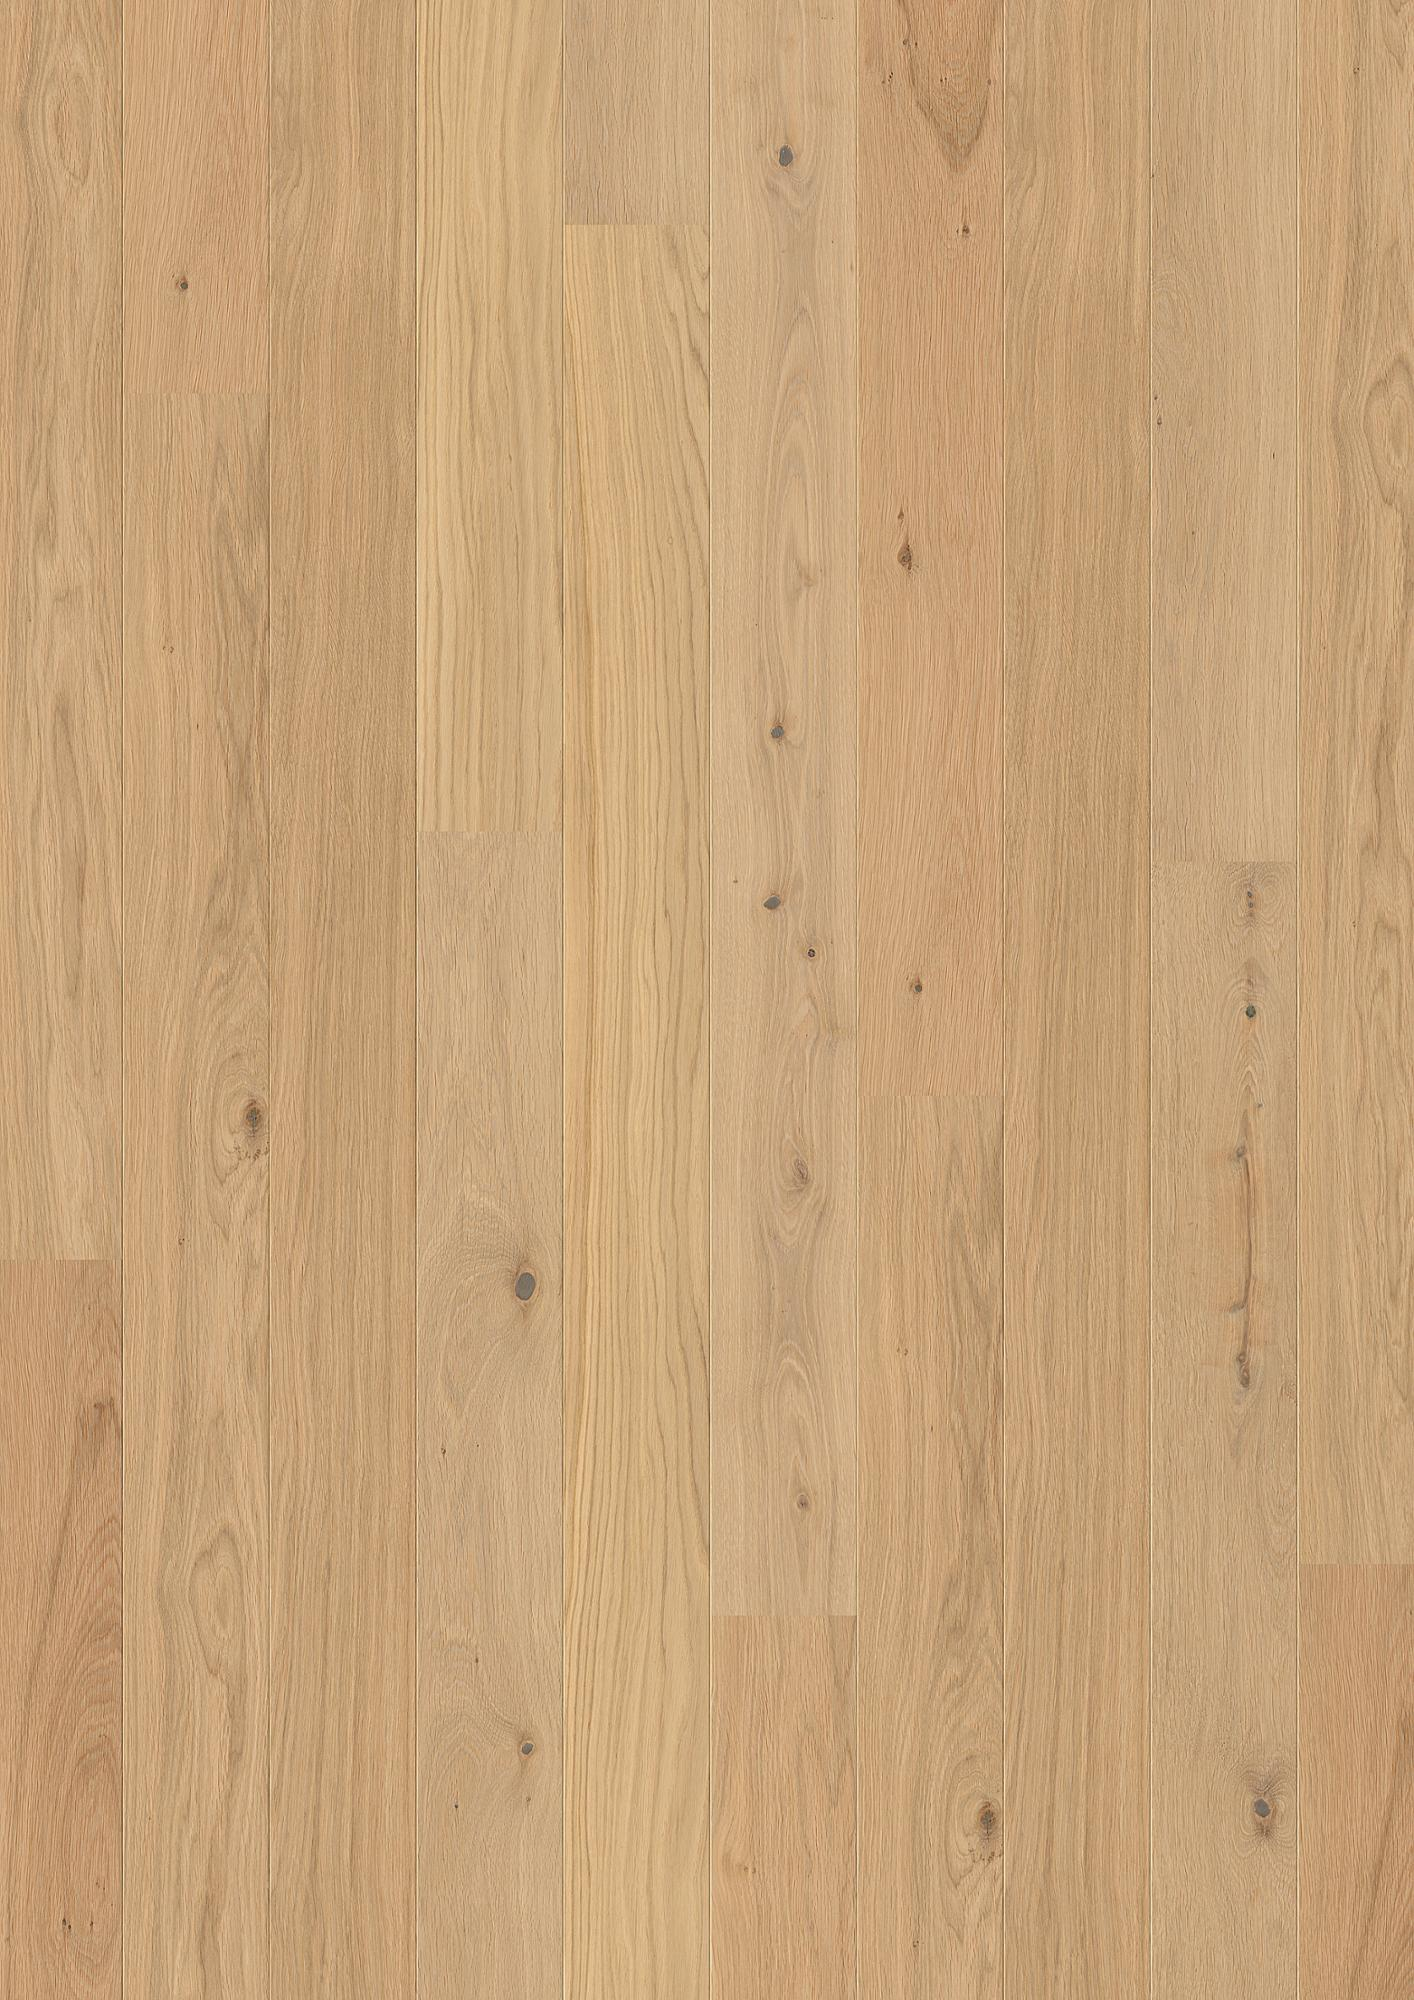 Oak Animoso, Live Pure lacquer, Brushed, Beveled 2V, Plank 181, 14x181x1800mm